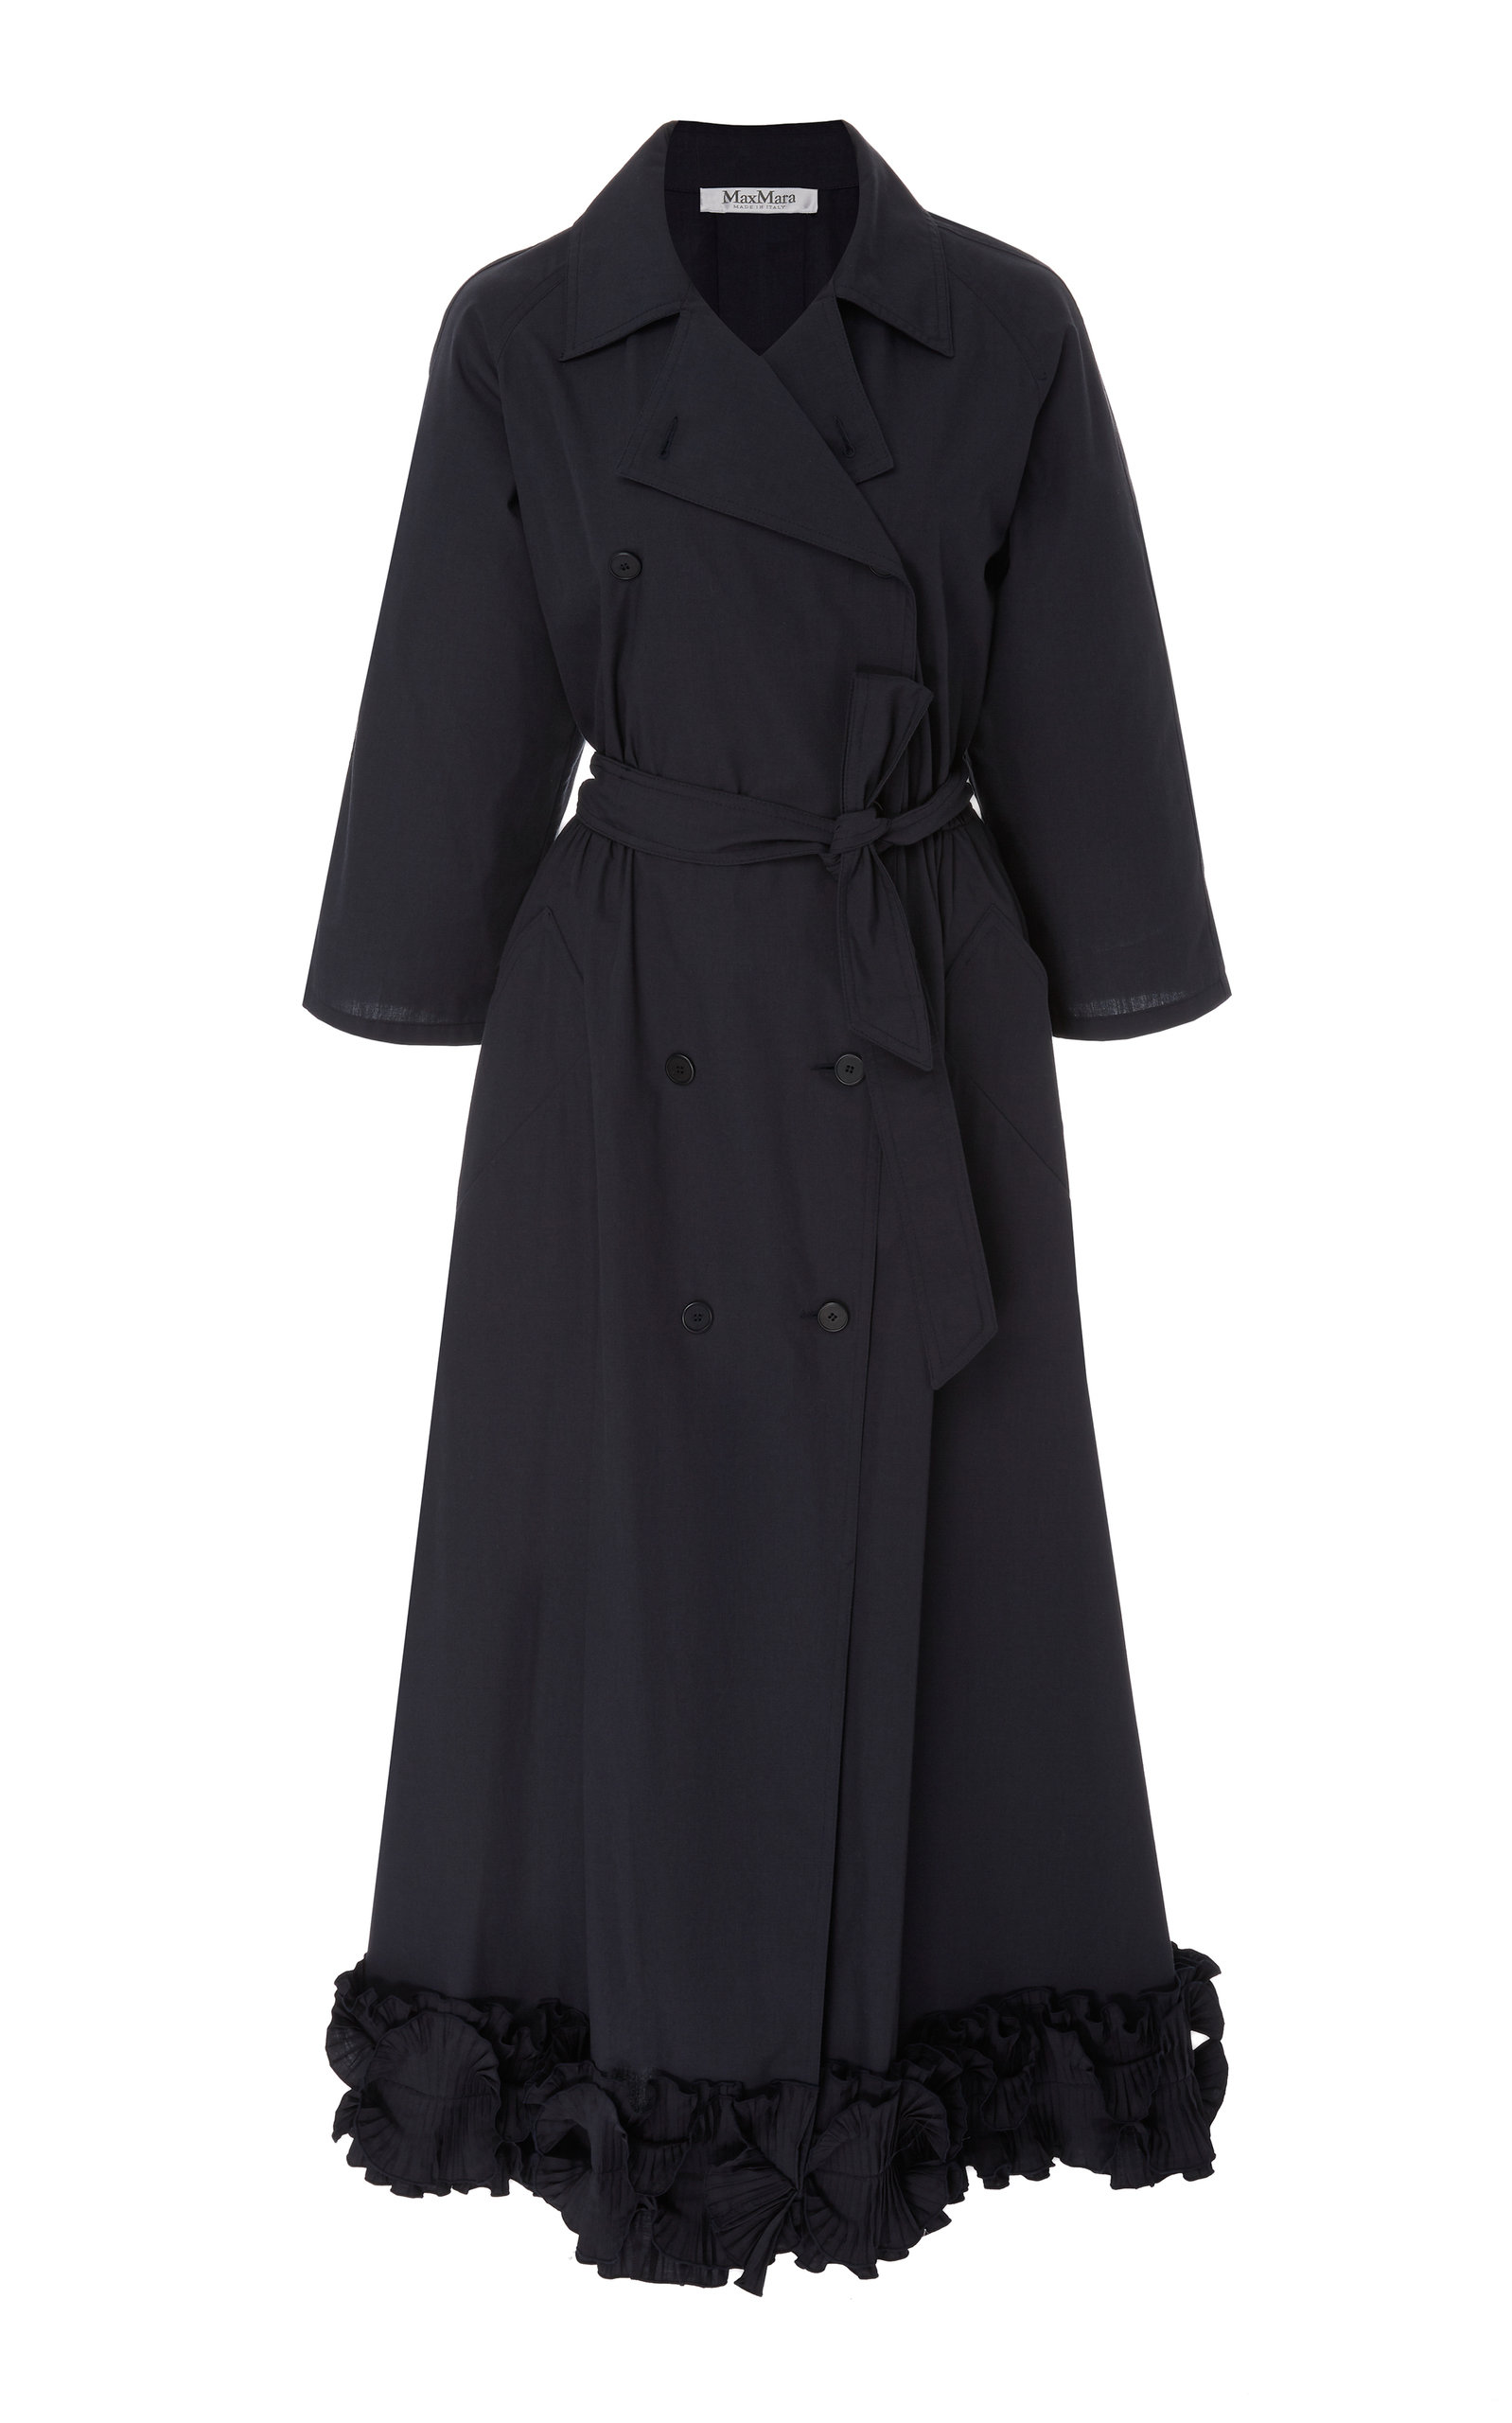 263da56a7d Max MaraBelted Ruffle-Hem Midi Coat Dress. CLOSE. Loading